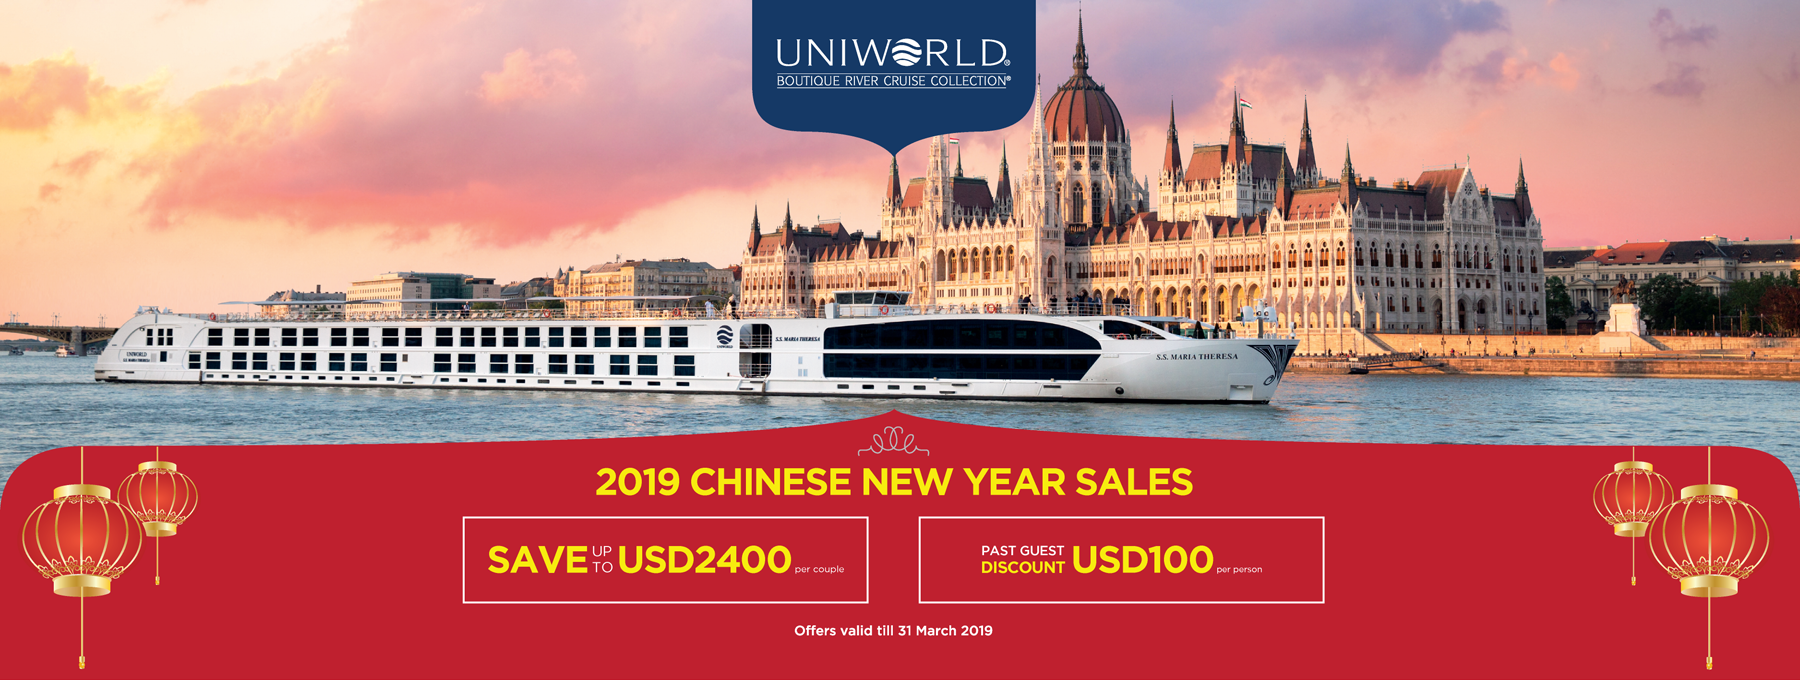 2019 CHINESE NEW YEAR SALES